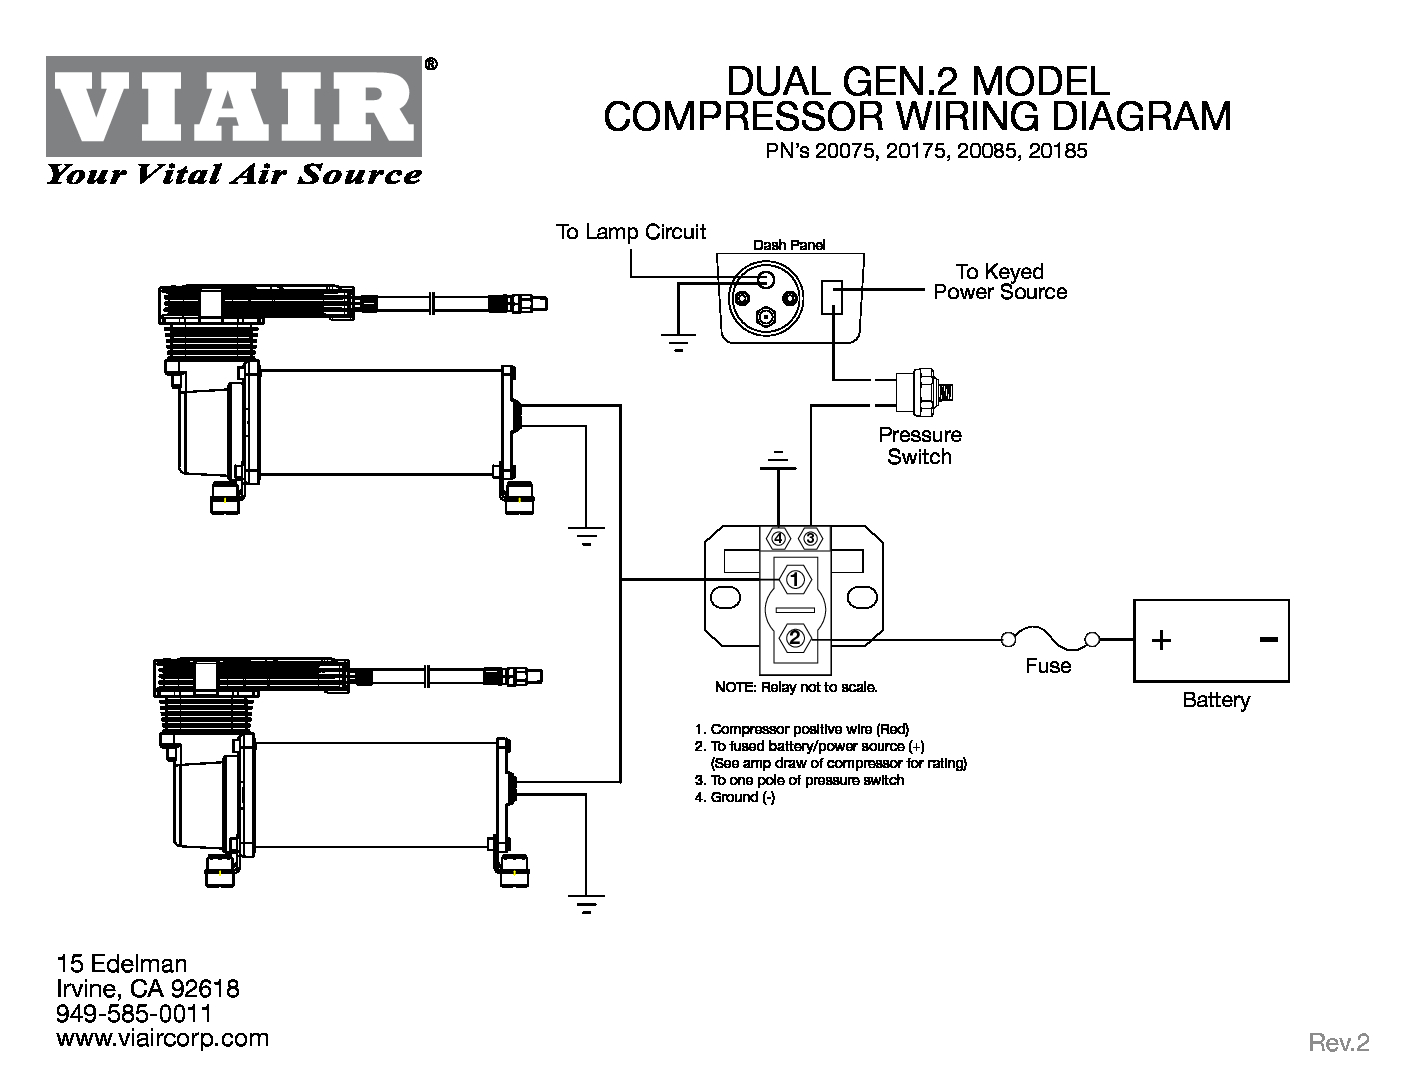 [DIAGRAM_09CH]  SF_5872] Viair Compressor Pressure Switch Relay Wiring Diagram Wiring  Diagram | Viair Air Compressor Wiring Diagram |  | Caci Pila Icand Ixtu Phae Mohammedshrine Librar Wiring 101